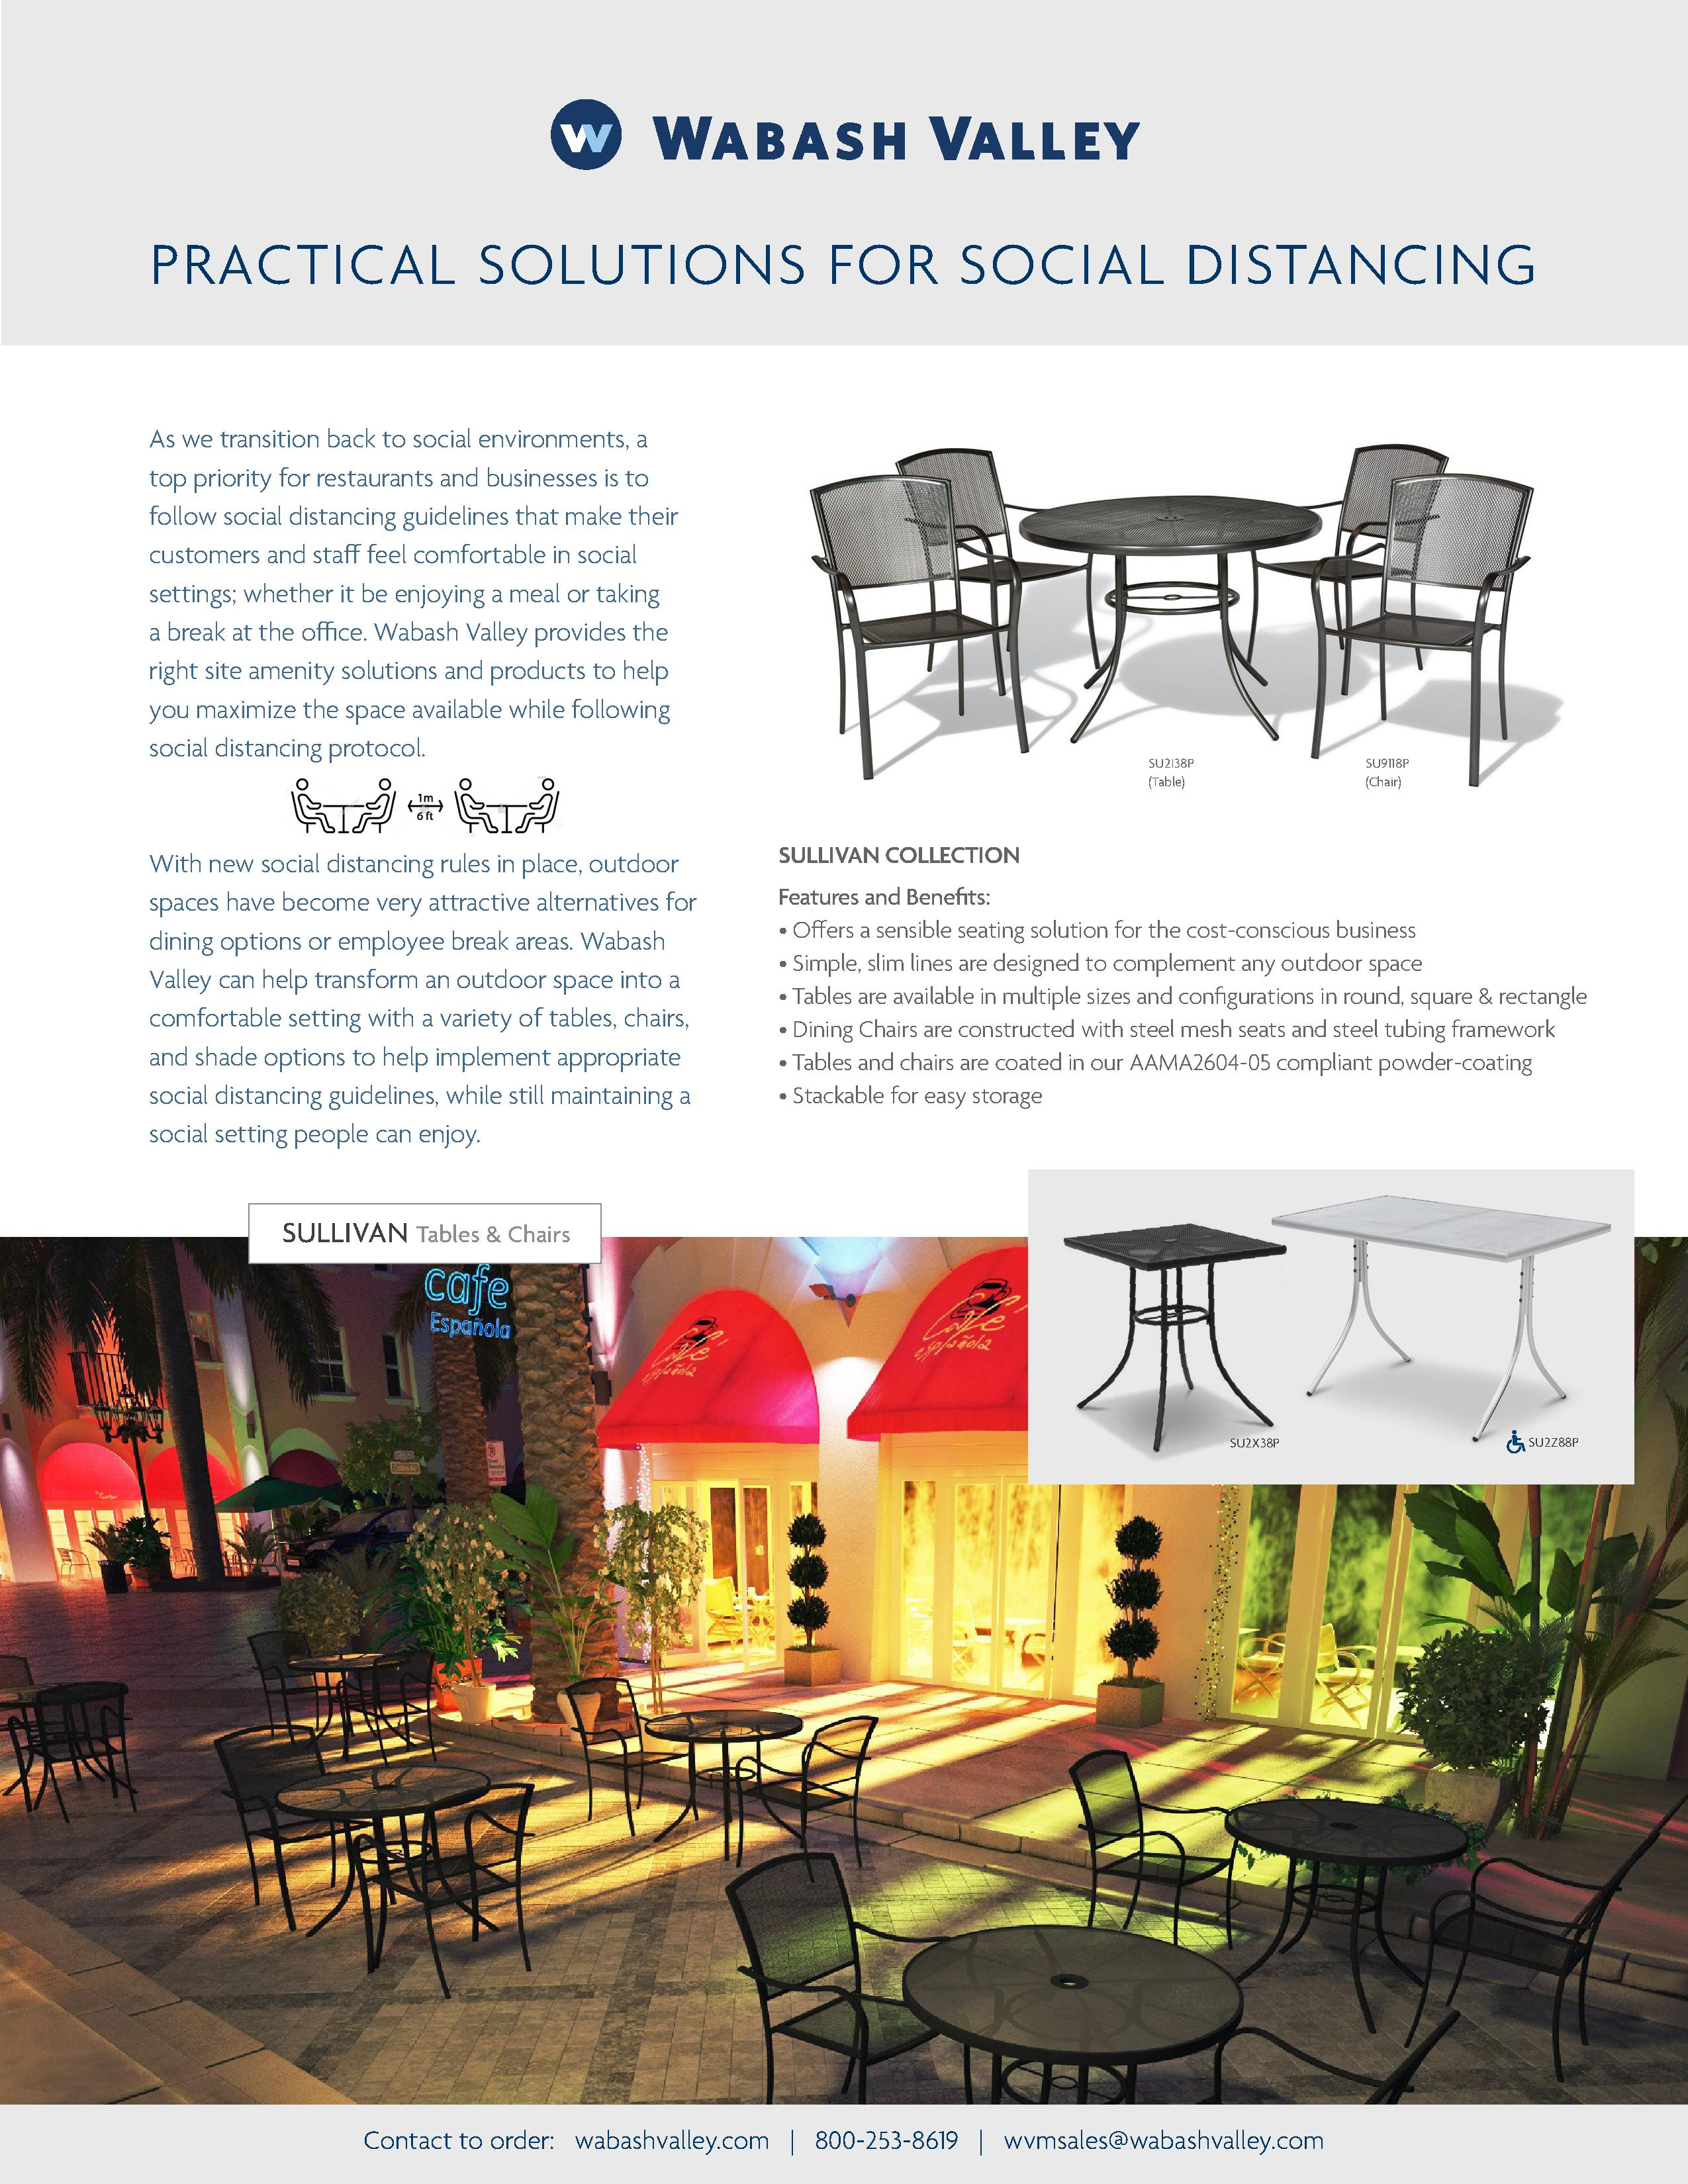 WV Practical solutions for social distancing